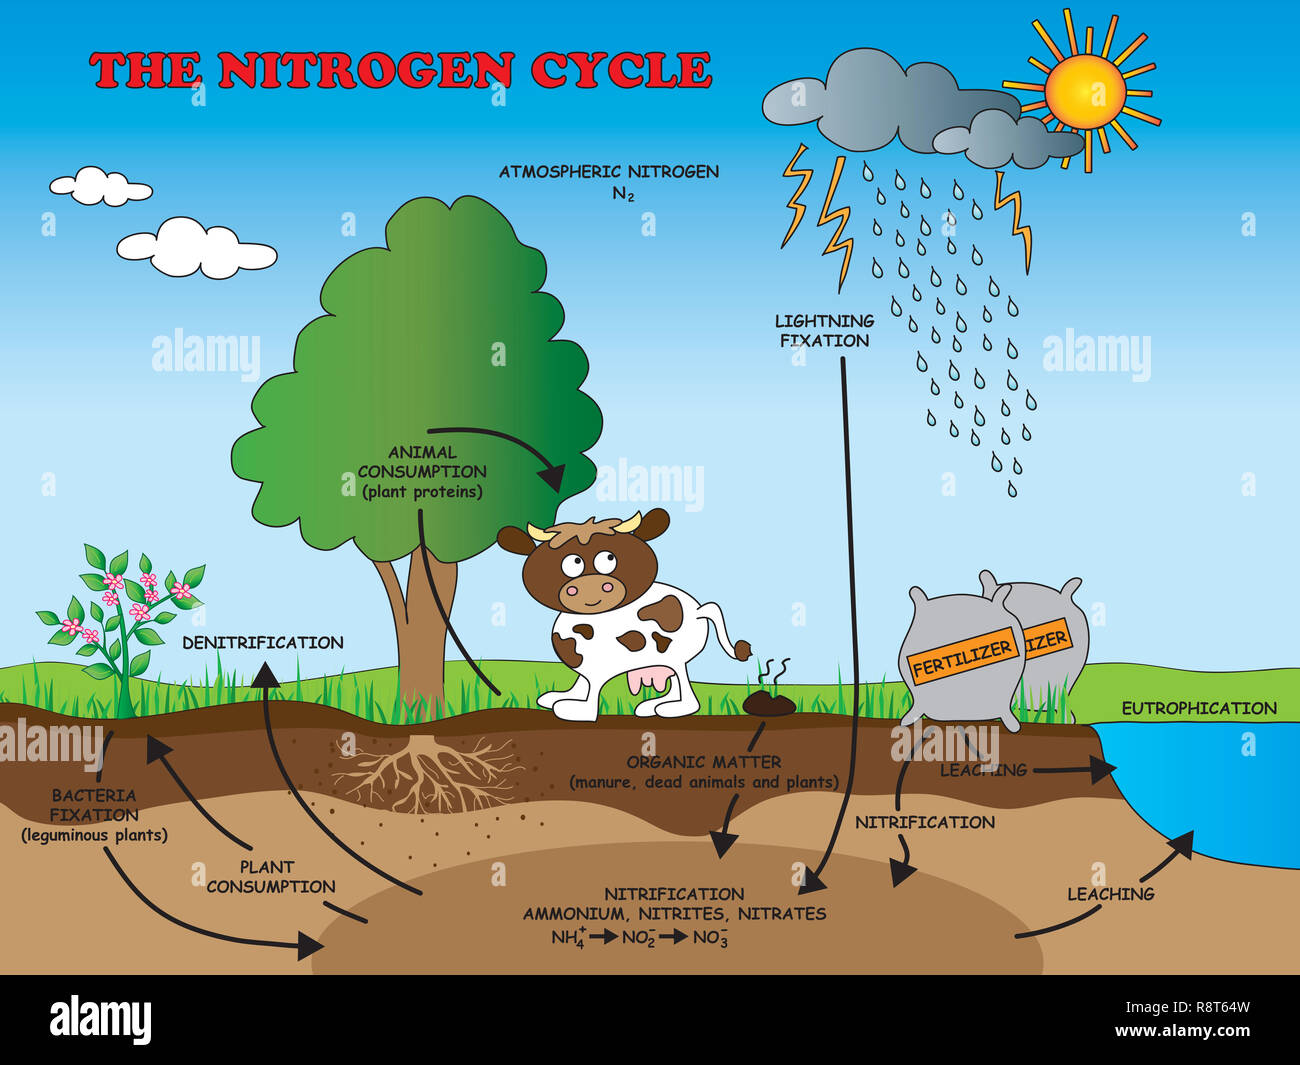 illustration of nitrogen cycle for school - stock image